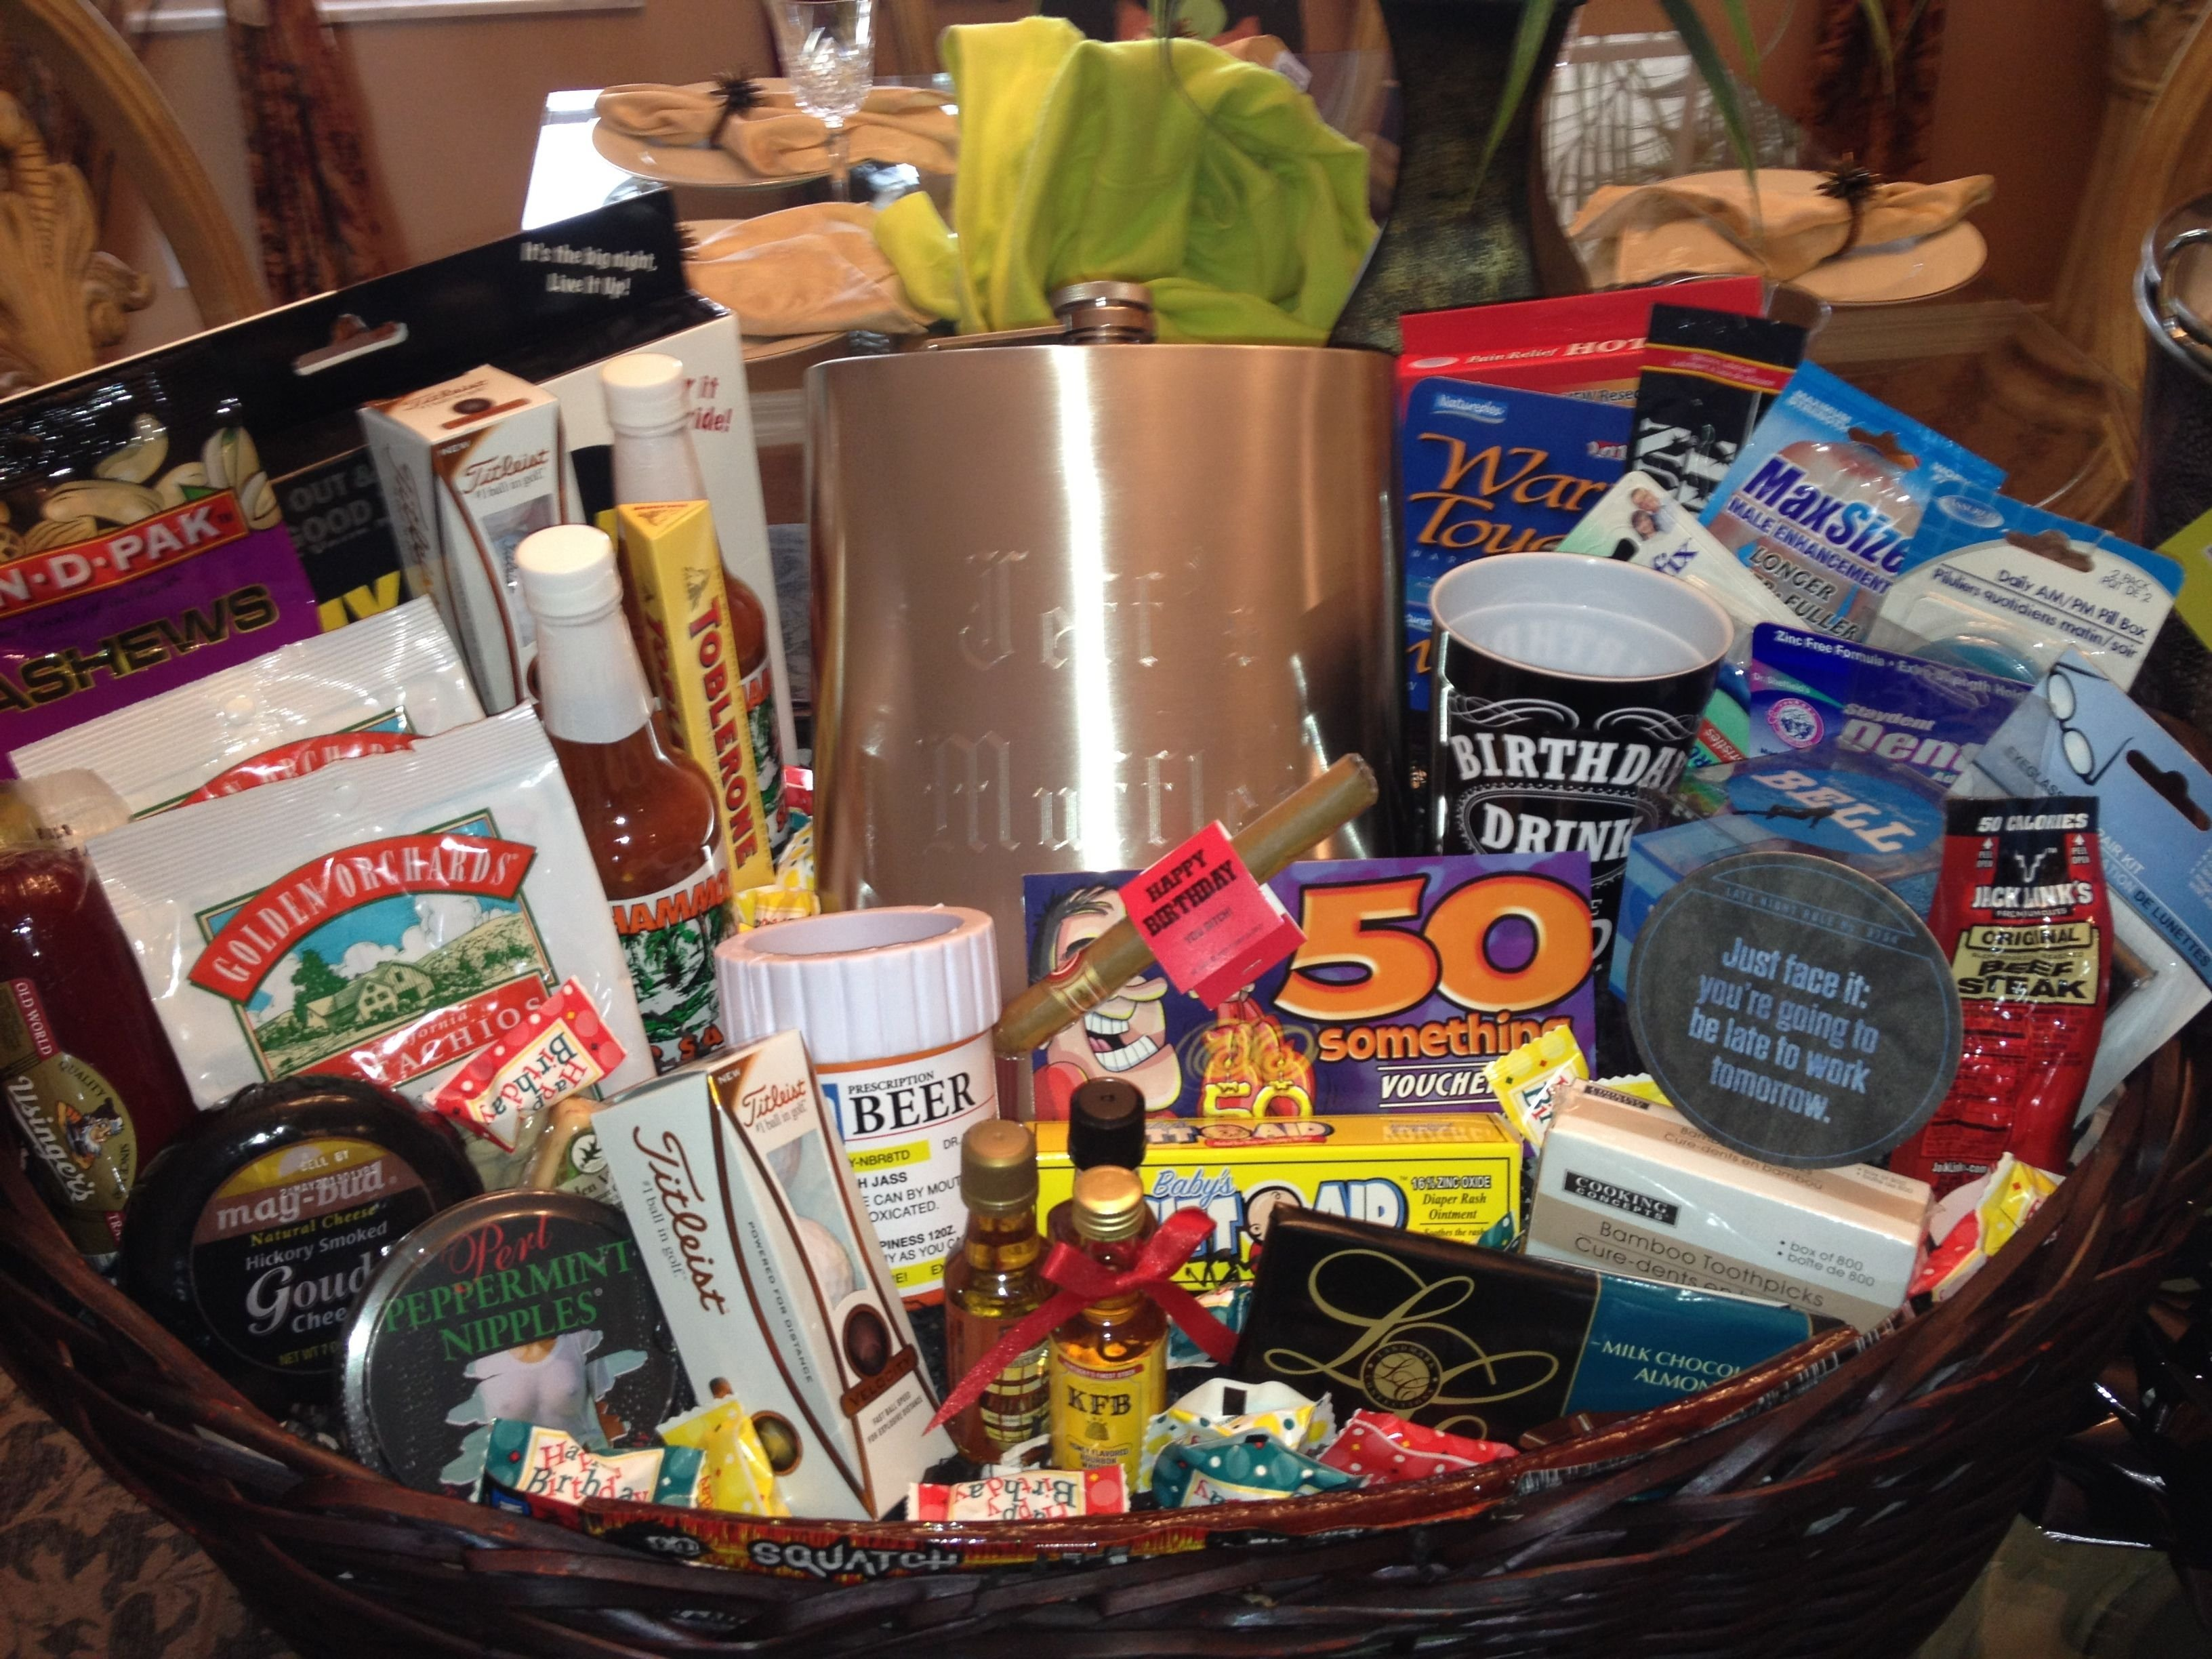 10 Wonderful Birthday Present Ideas For Her 50th Gift Basket Him